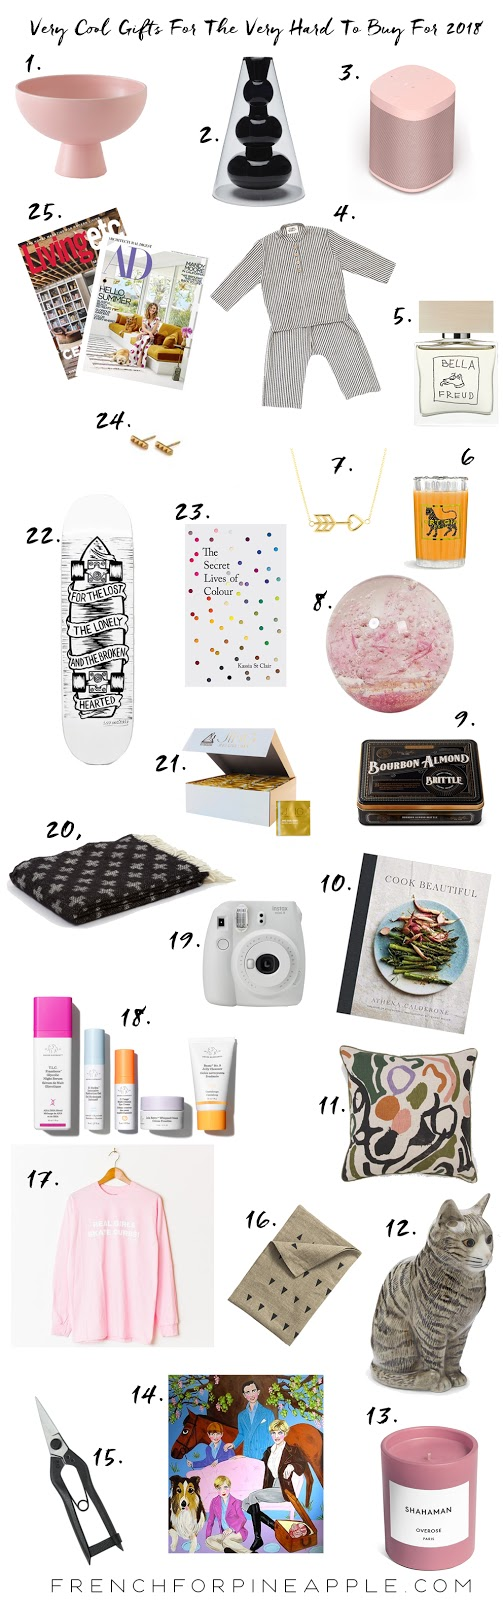 French For Pineapple Blog - 25 Very Cool Gifts For The Very Hard To Buy For 2018 Edition - Christmas Gift List 2018